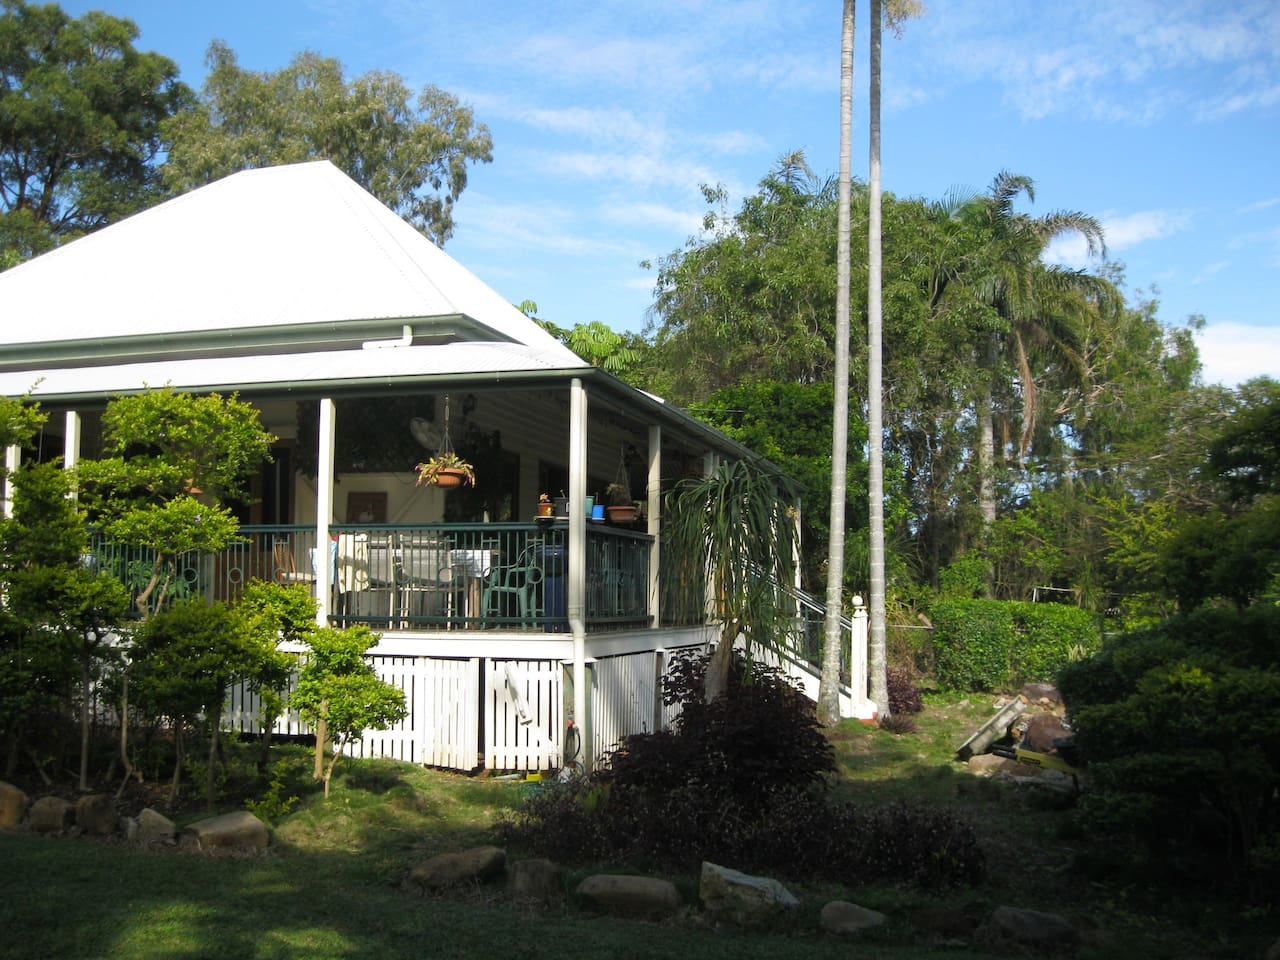 Beautiful traditional Queenslander home, with cool wraparound verandah to sit and relax.